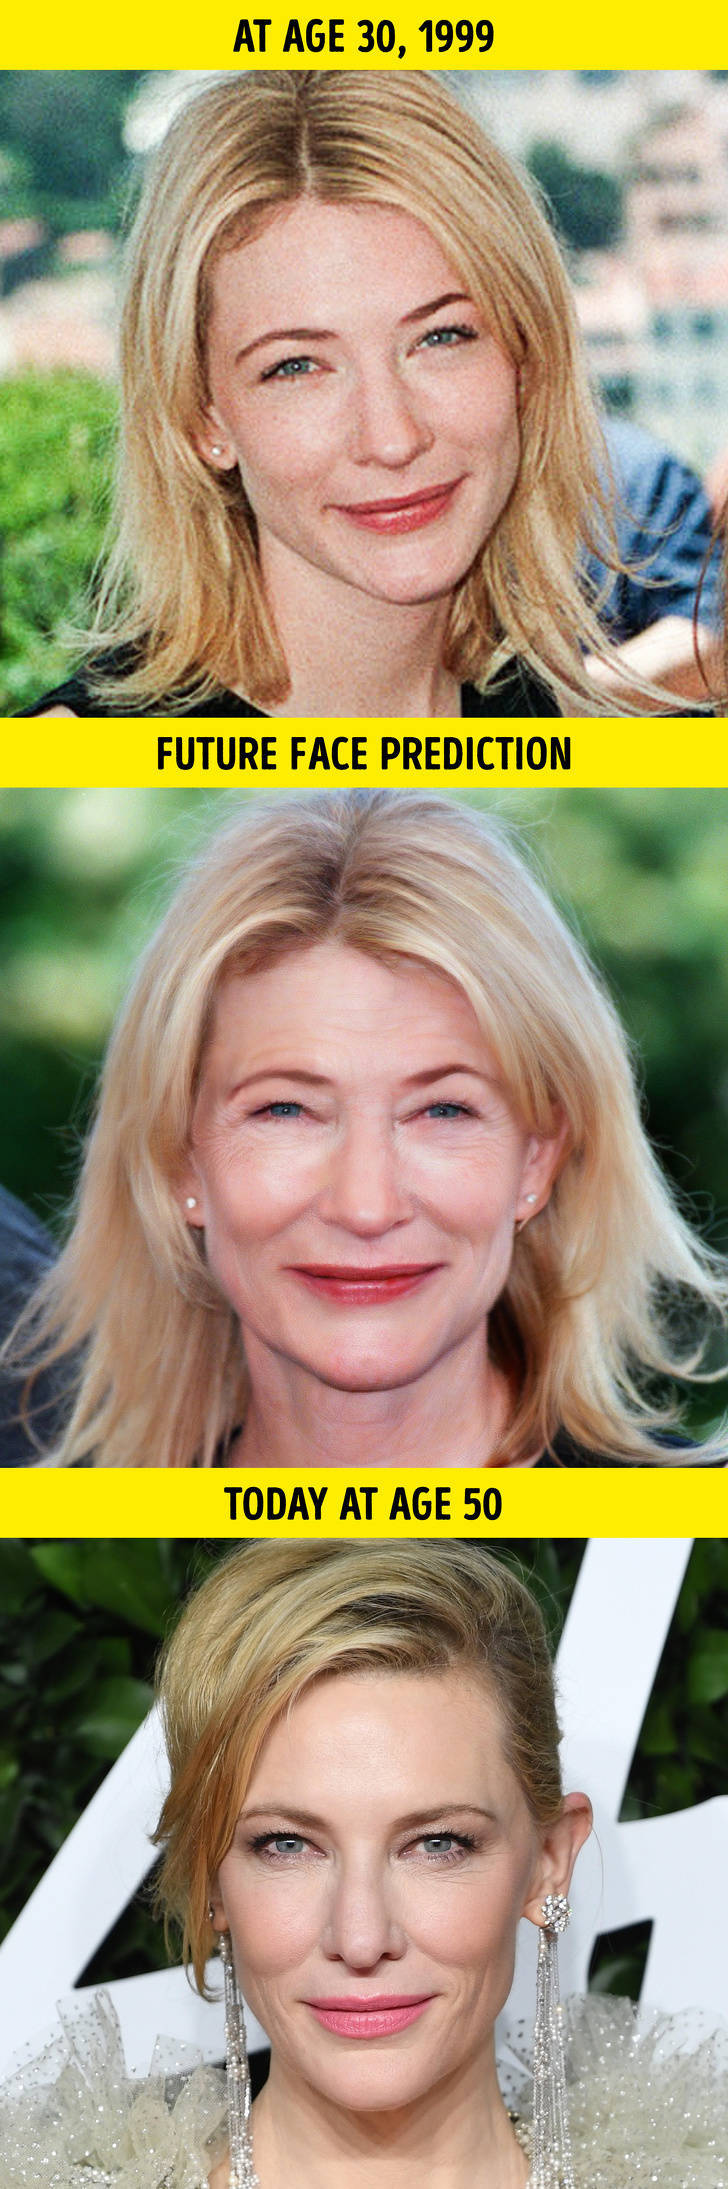 Plastic Surgeon Analyzes How Celebrity Women Should Have Looked By Now If They Aged Like Average People